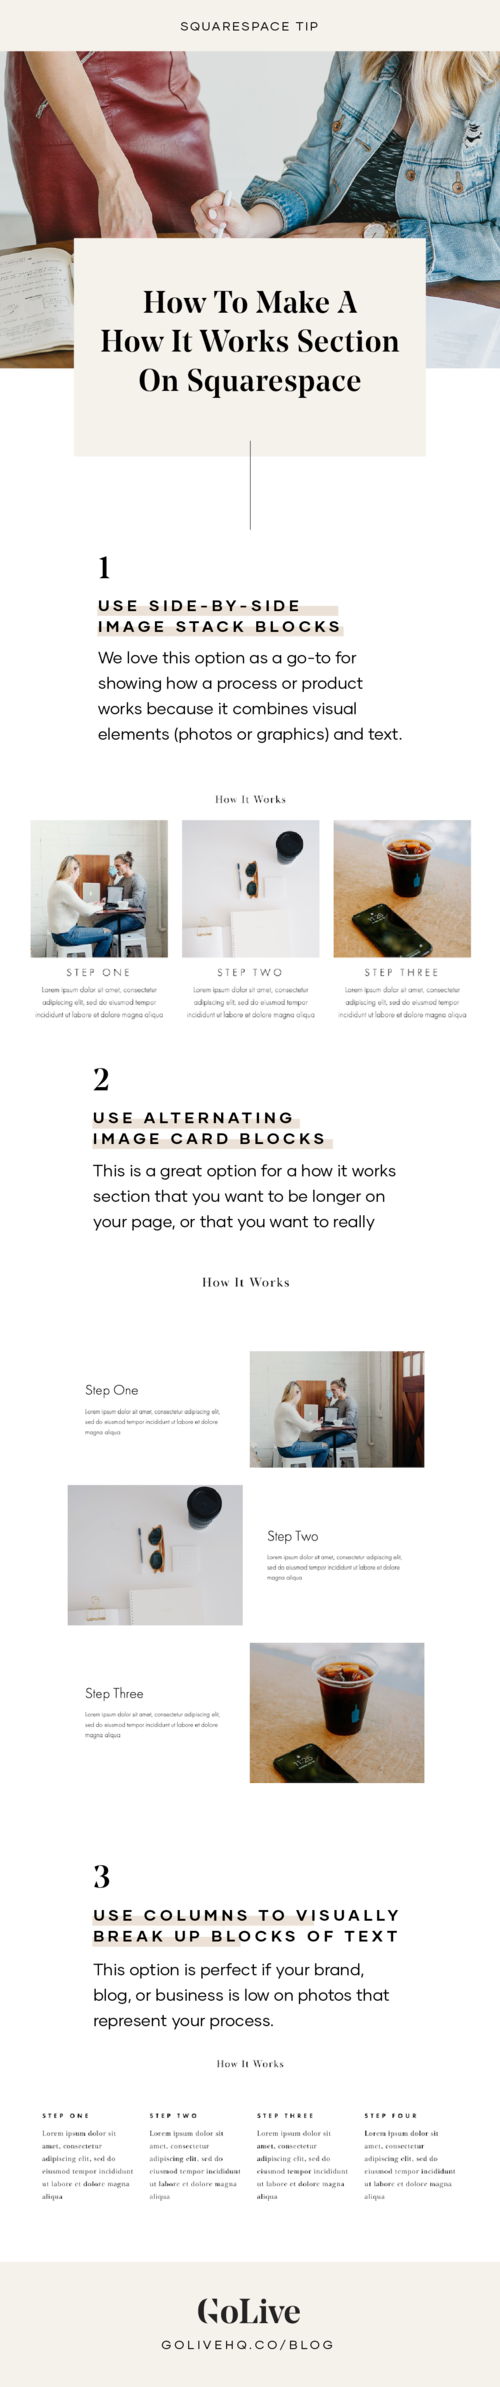 how+to+create+a+how+it+works+section+in+Squarespace+_+By+GoLive.png